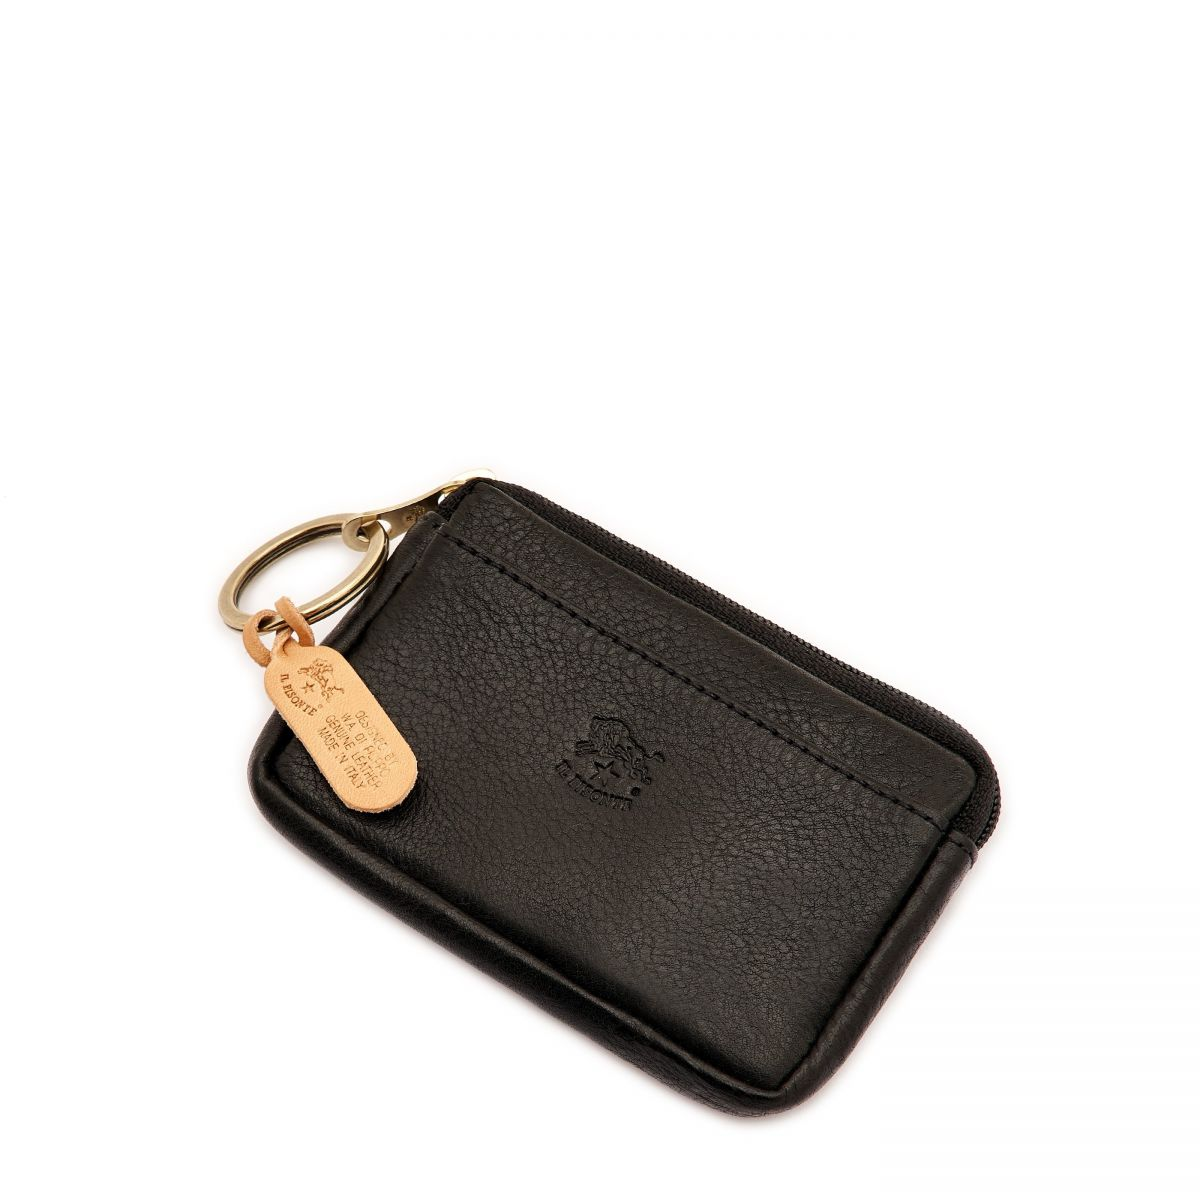 Coin Purse in Cowhide Double Leather color Black - SCP017 | Details